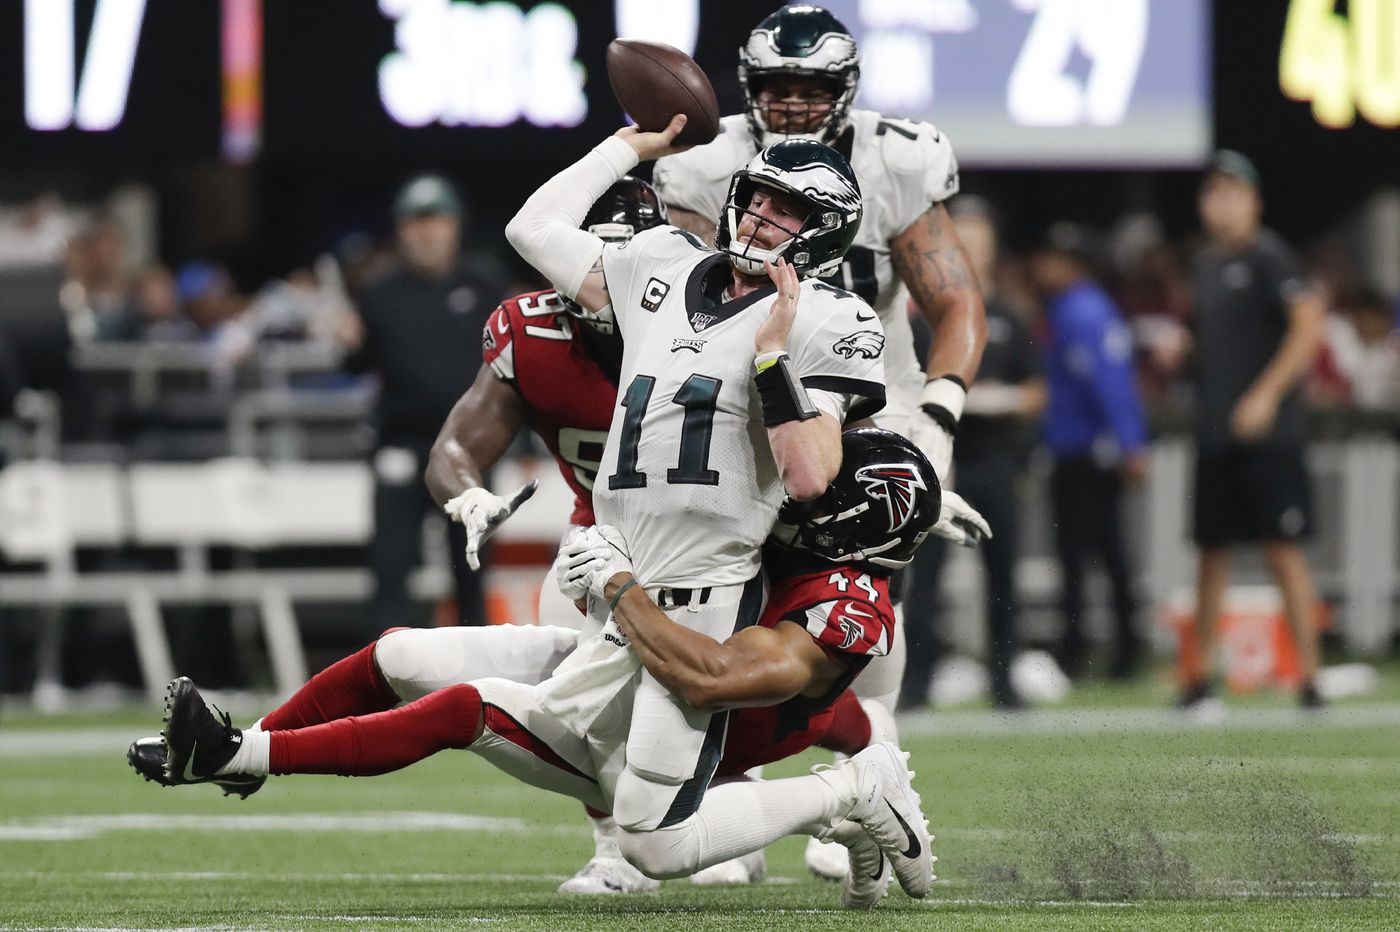 Carson Wentz's near-miraculous comeback not enough in Eagles loss to the Falcons